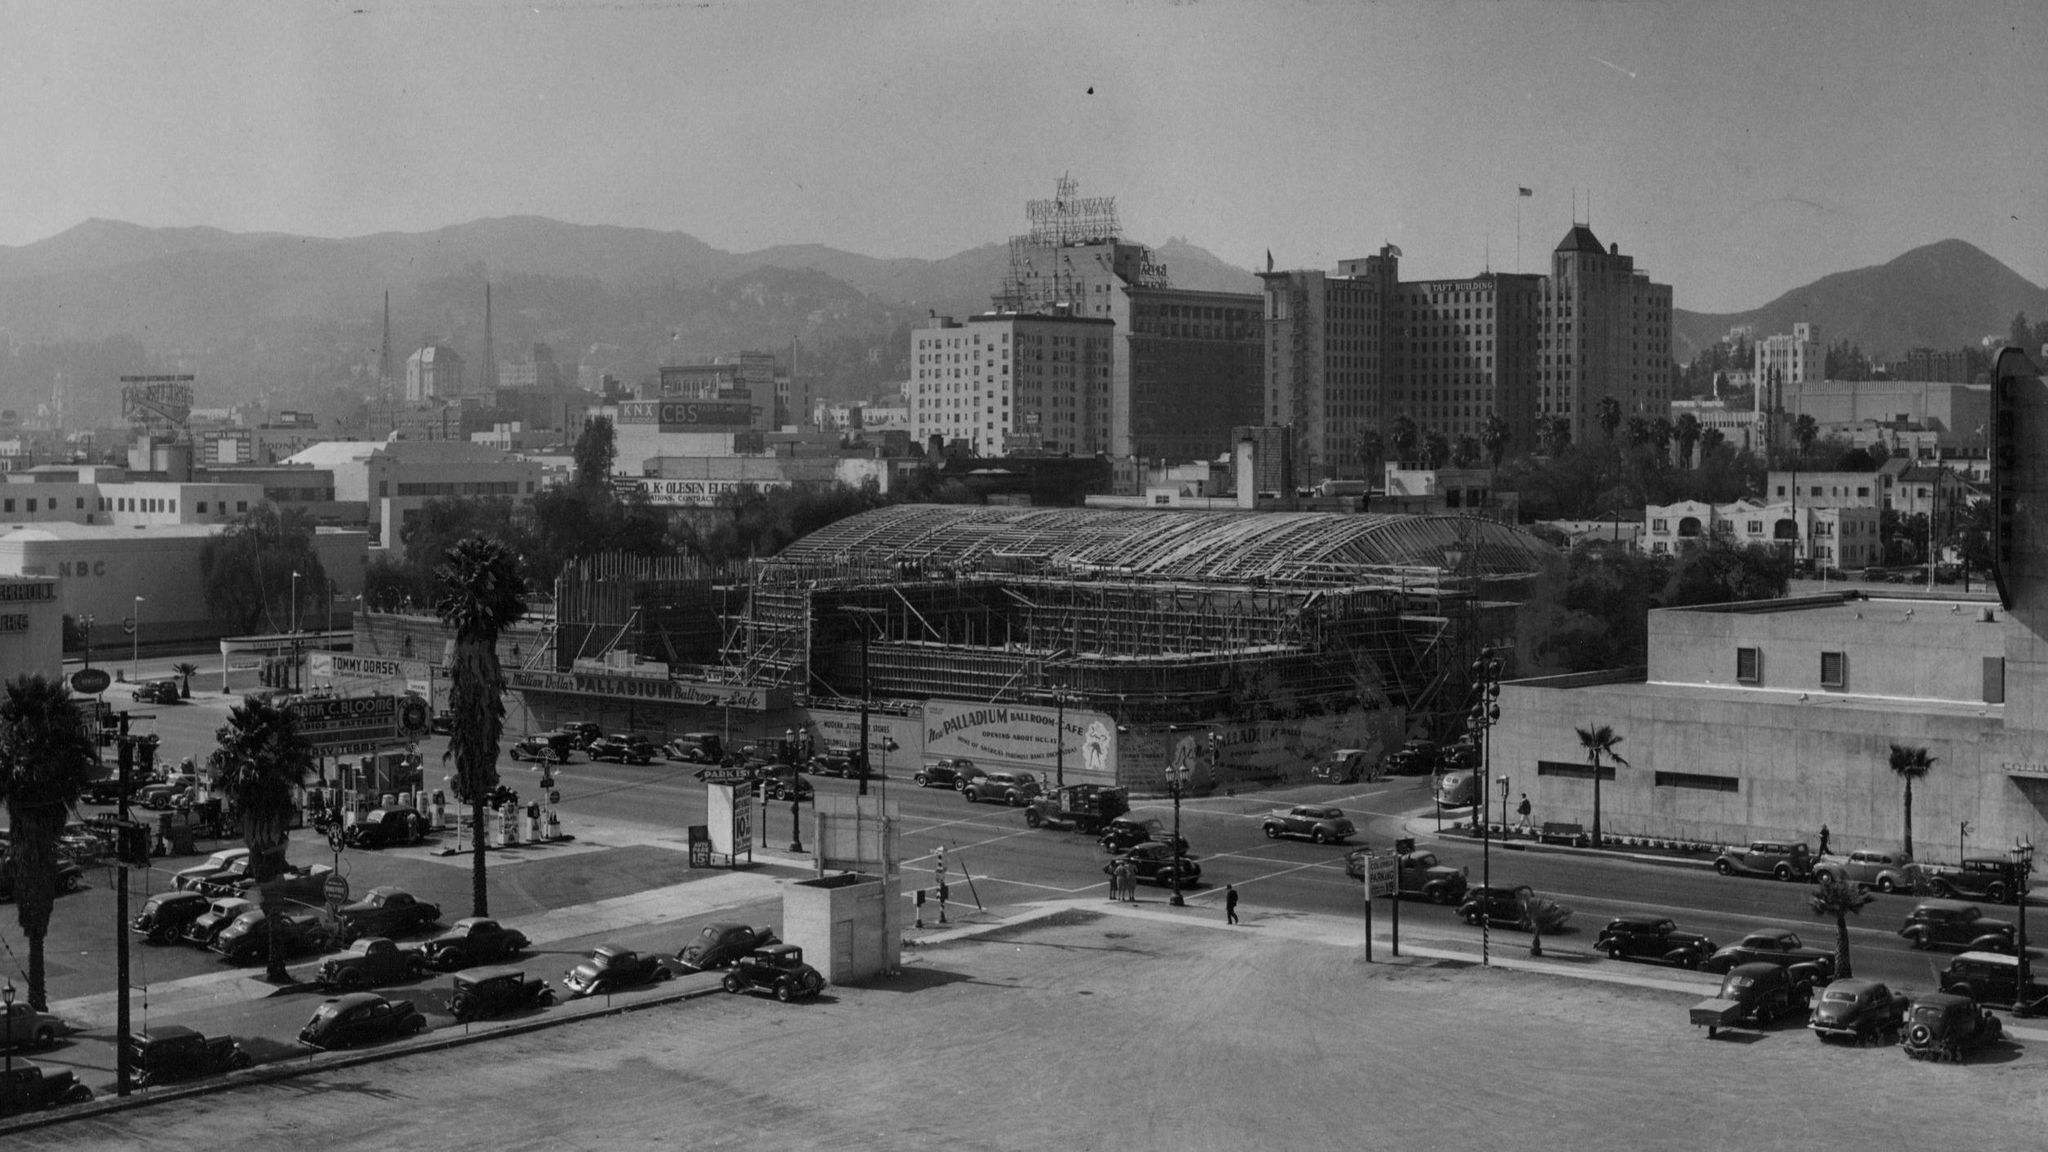 A view of the Hollywood Palladium under construction in 1940.